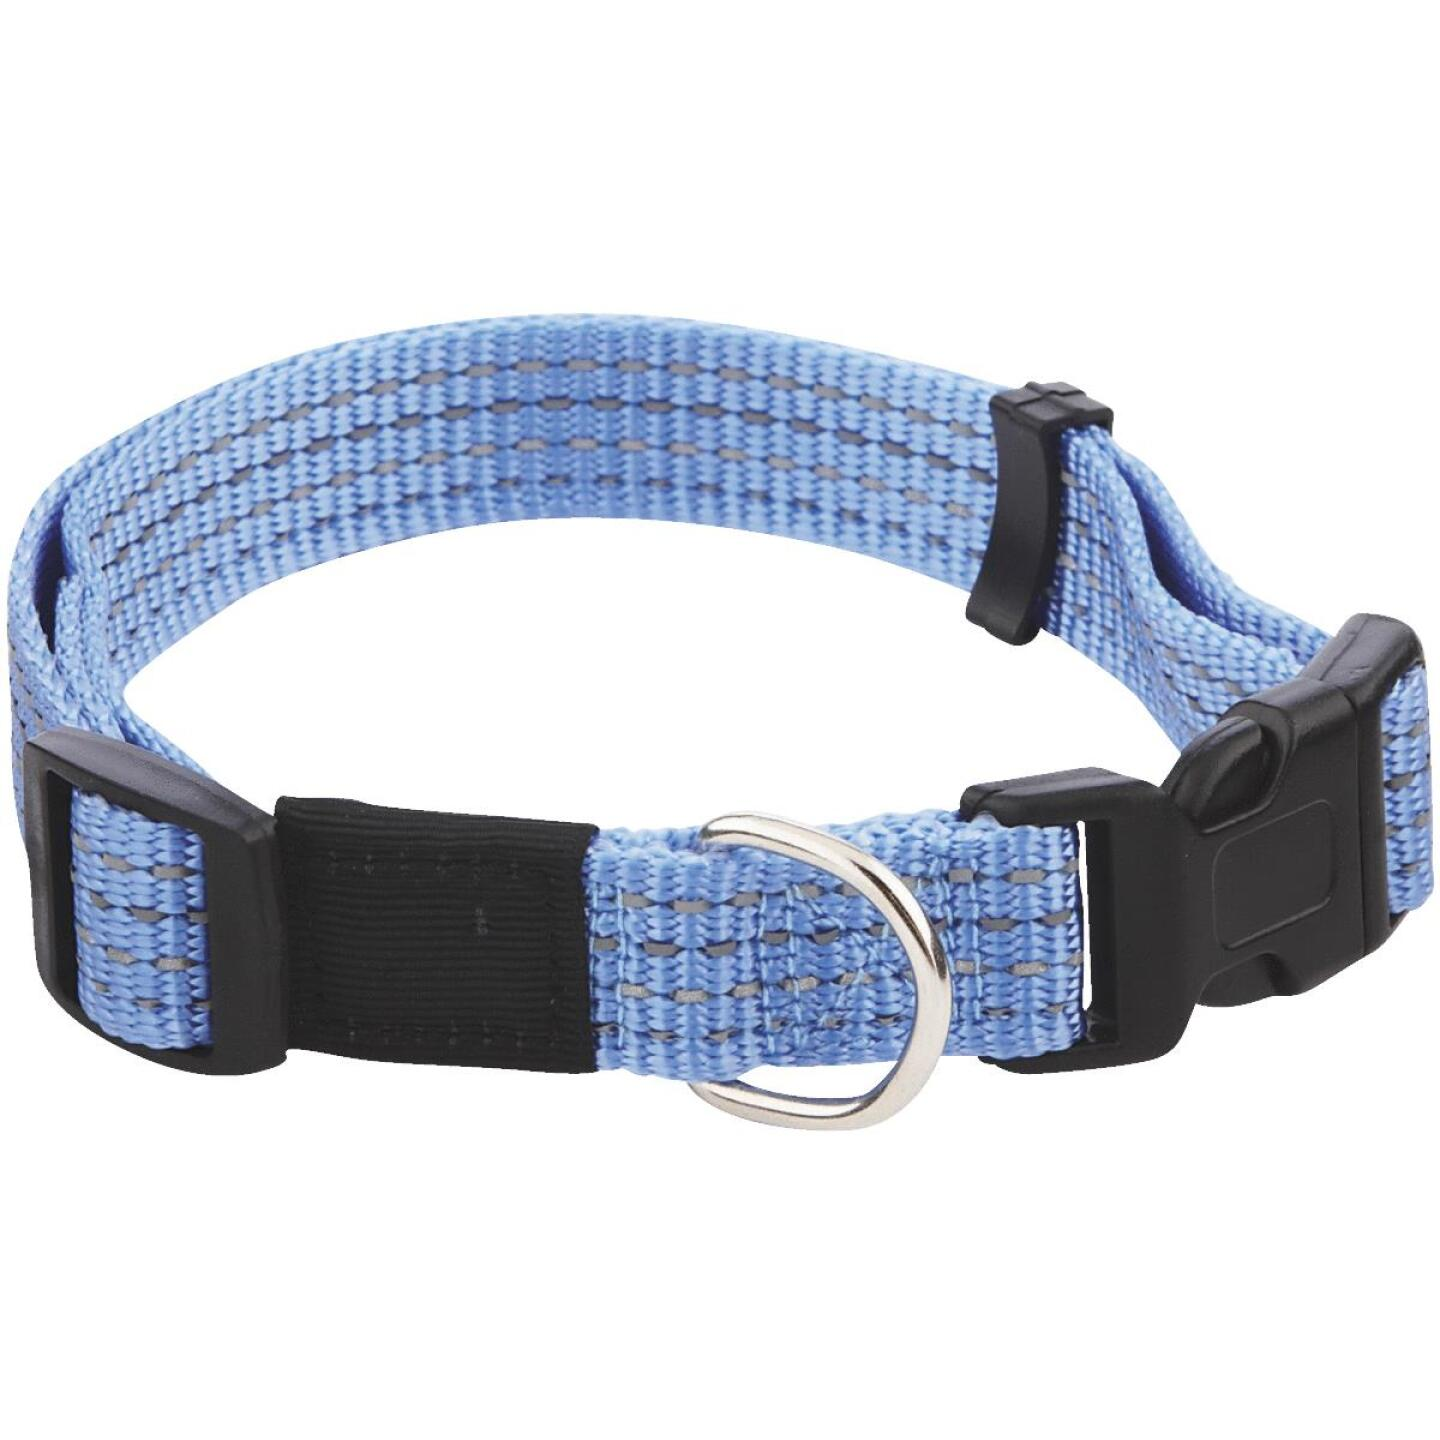 Westminster Pet Ruffin' it Reflective 14 In. to 20 In. Nylon Dog Collar Image 1